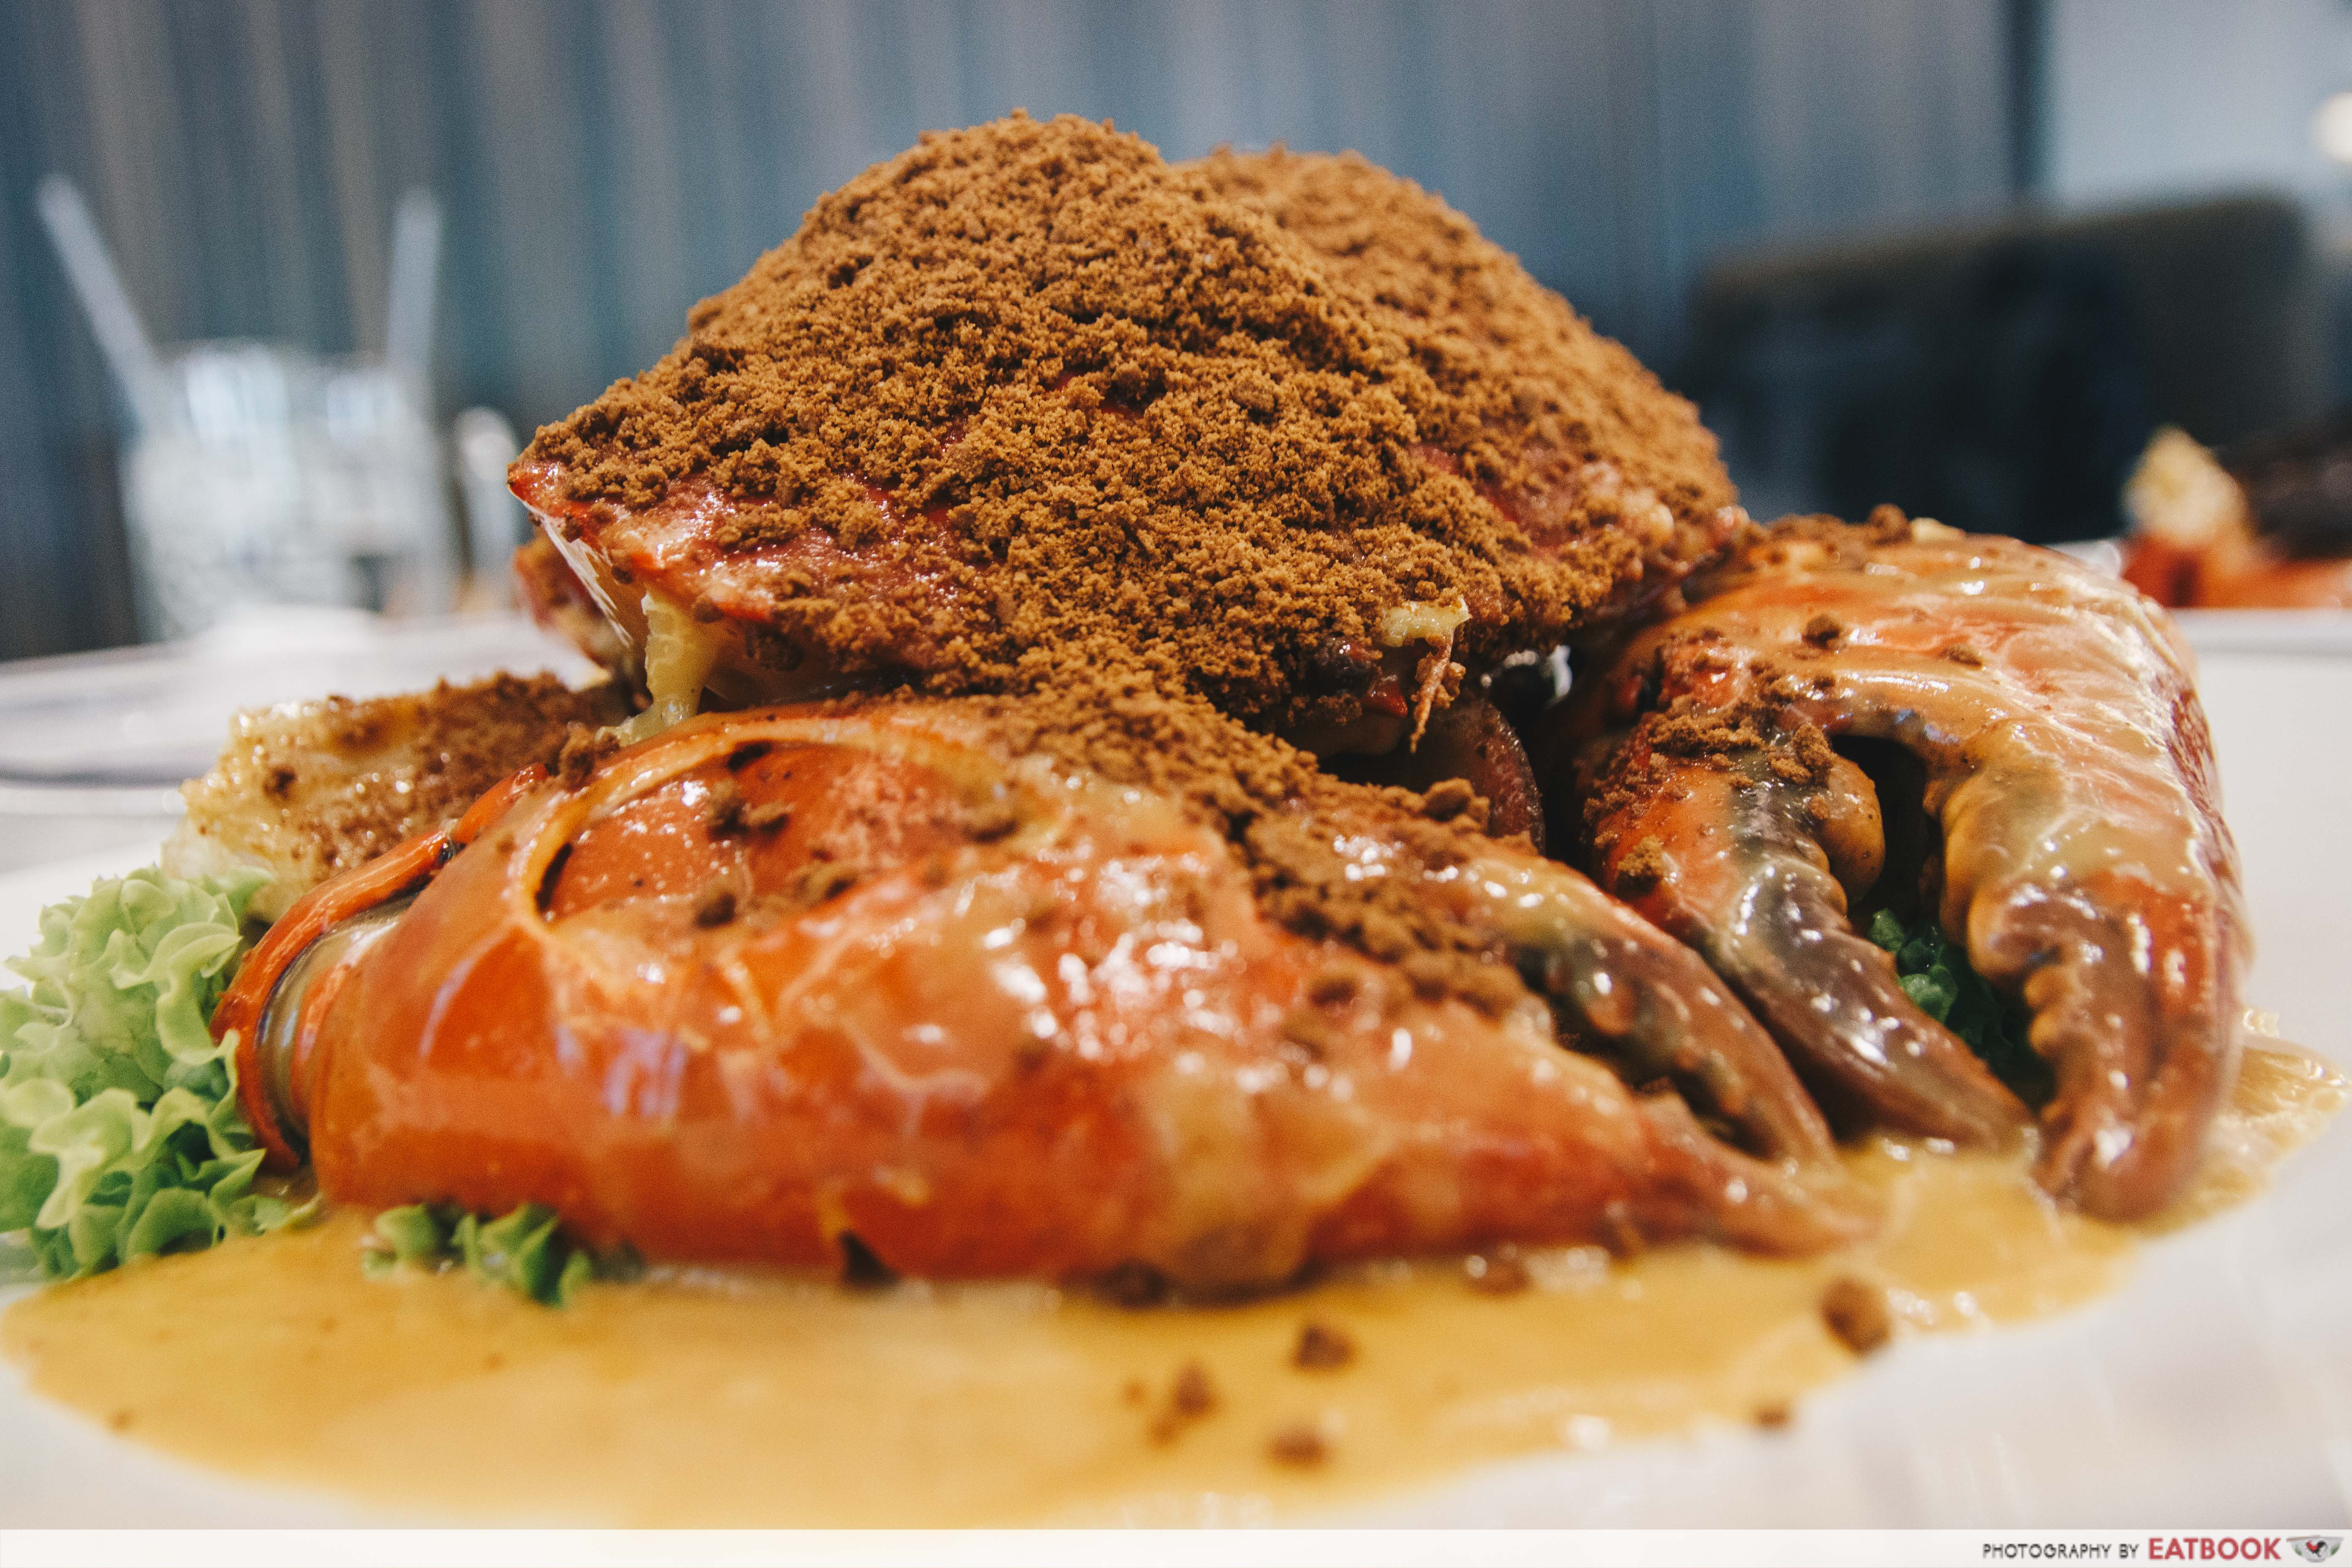 House of Seafood - milo crab